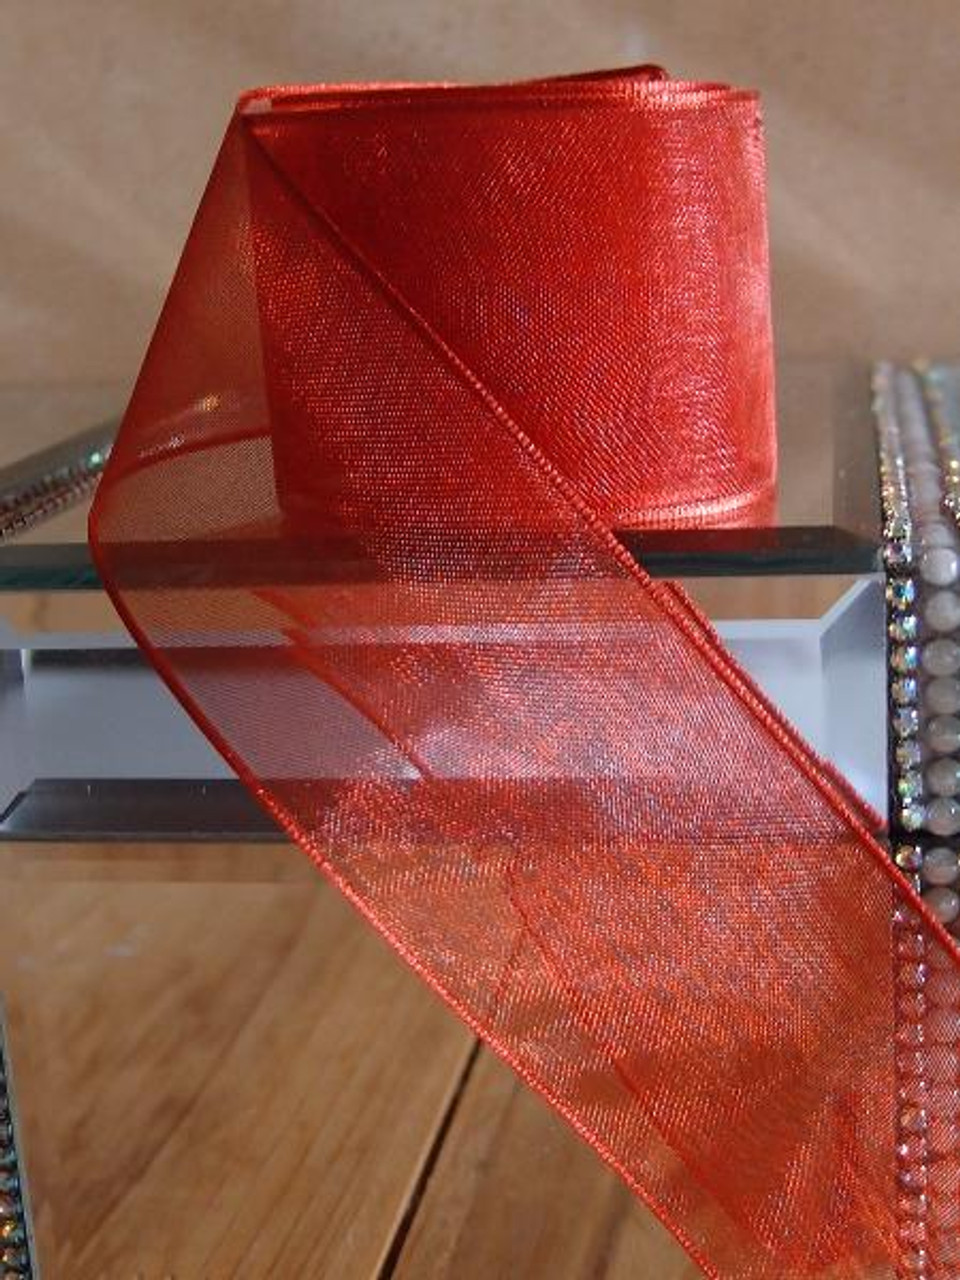 Crimson Sheer Ribbon with Wired Edge (2 sizes)